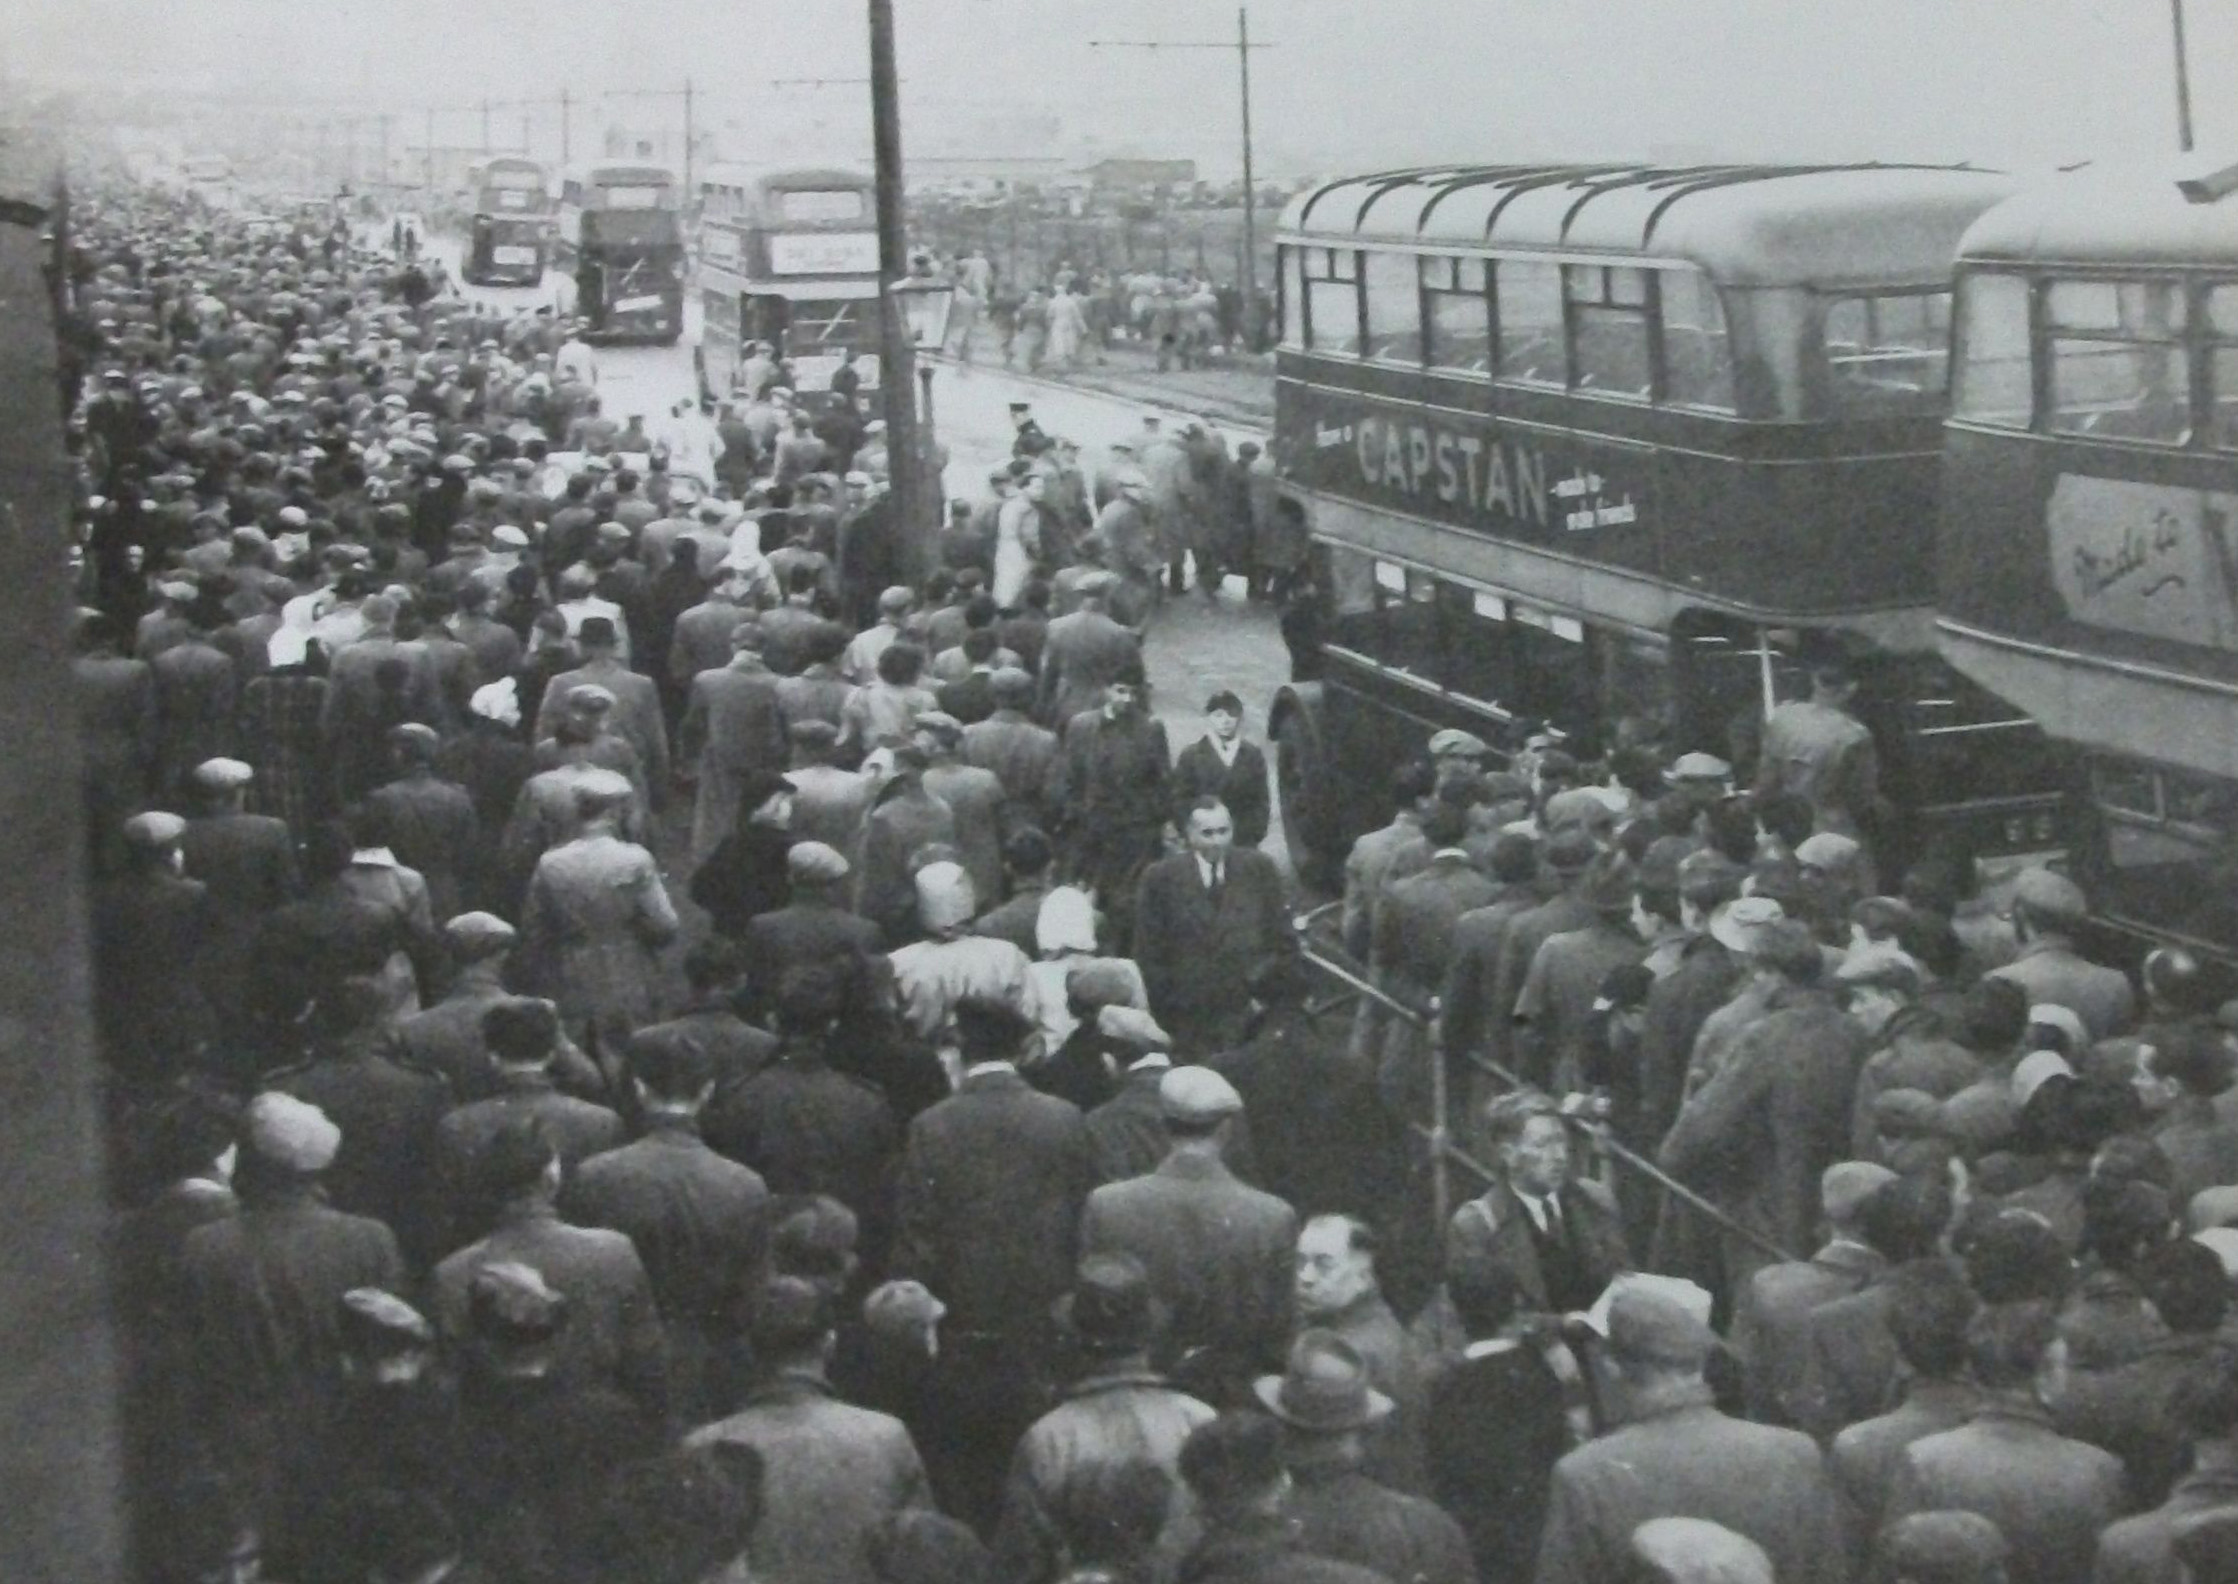 Leeds United fans on their way home after a match at Elland Road